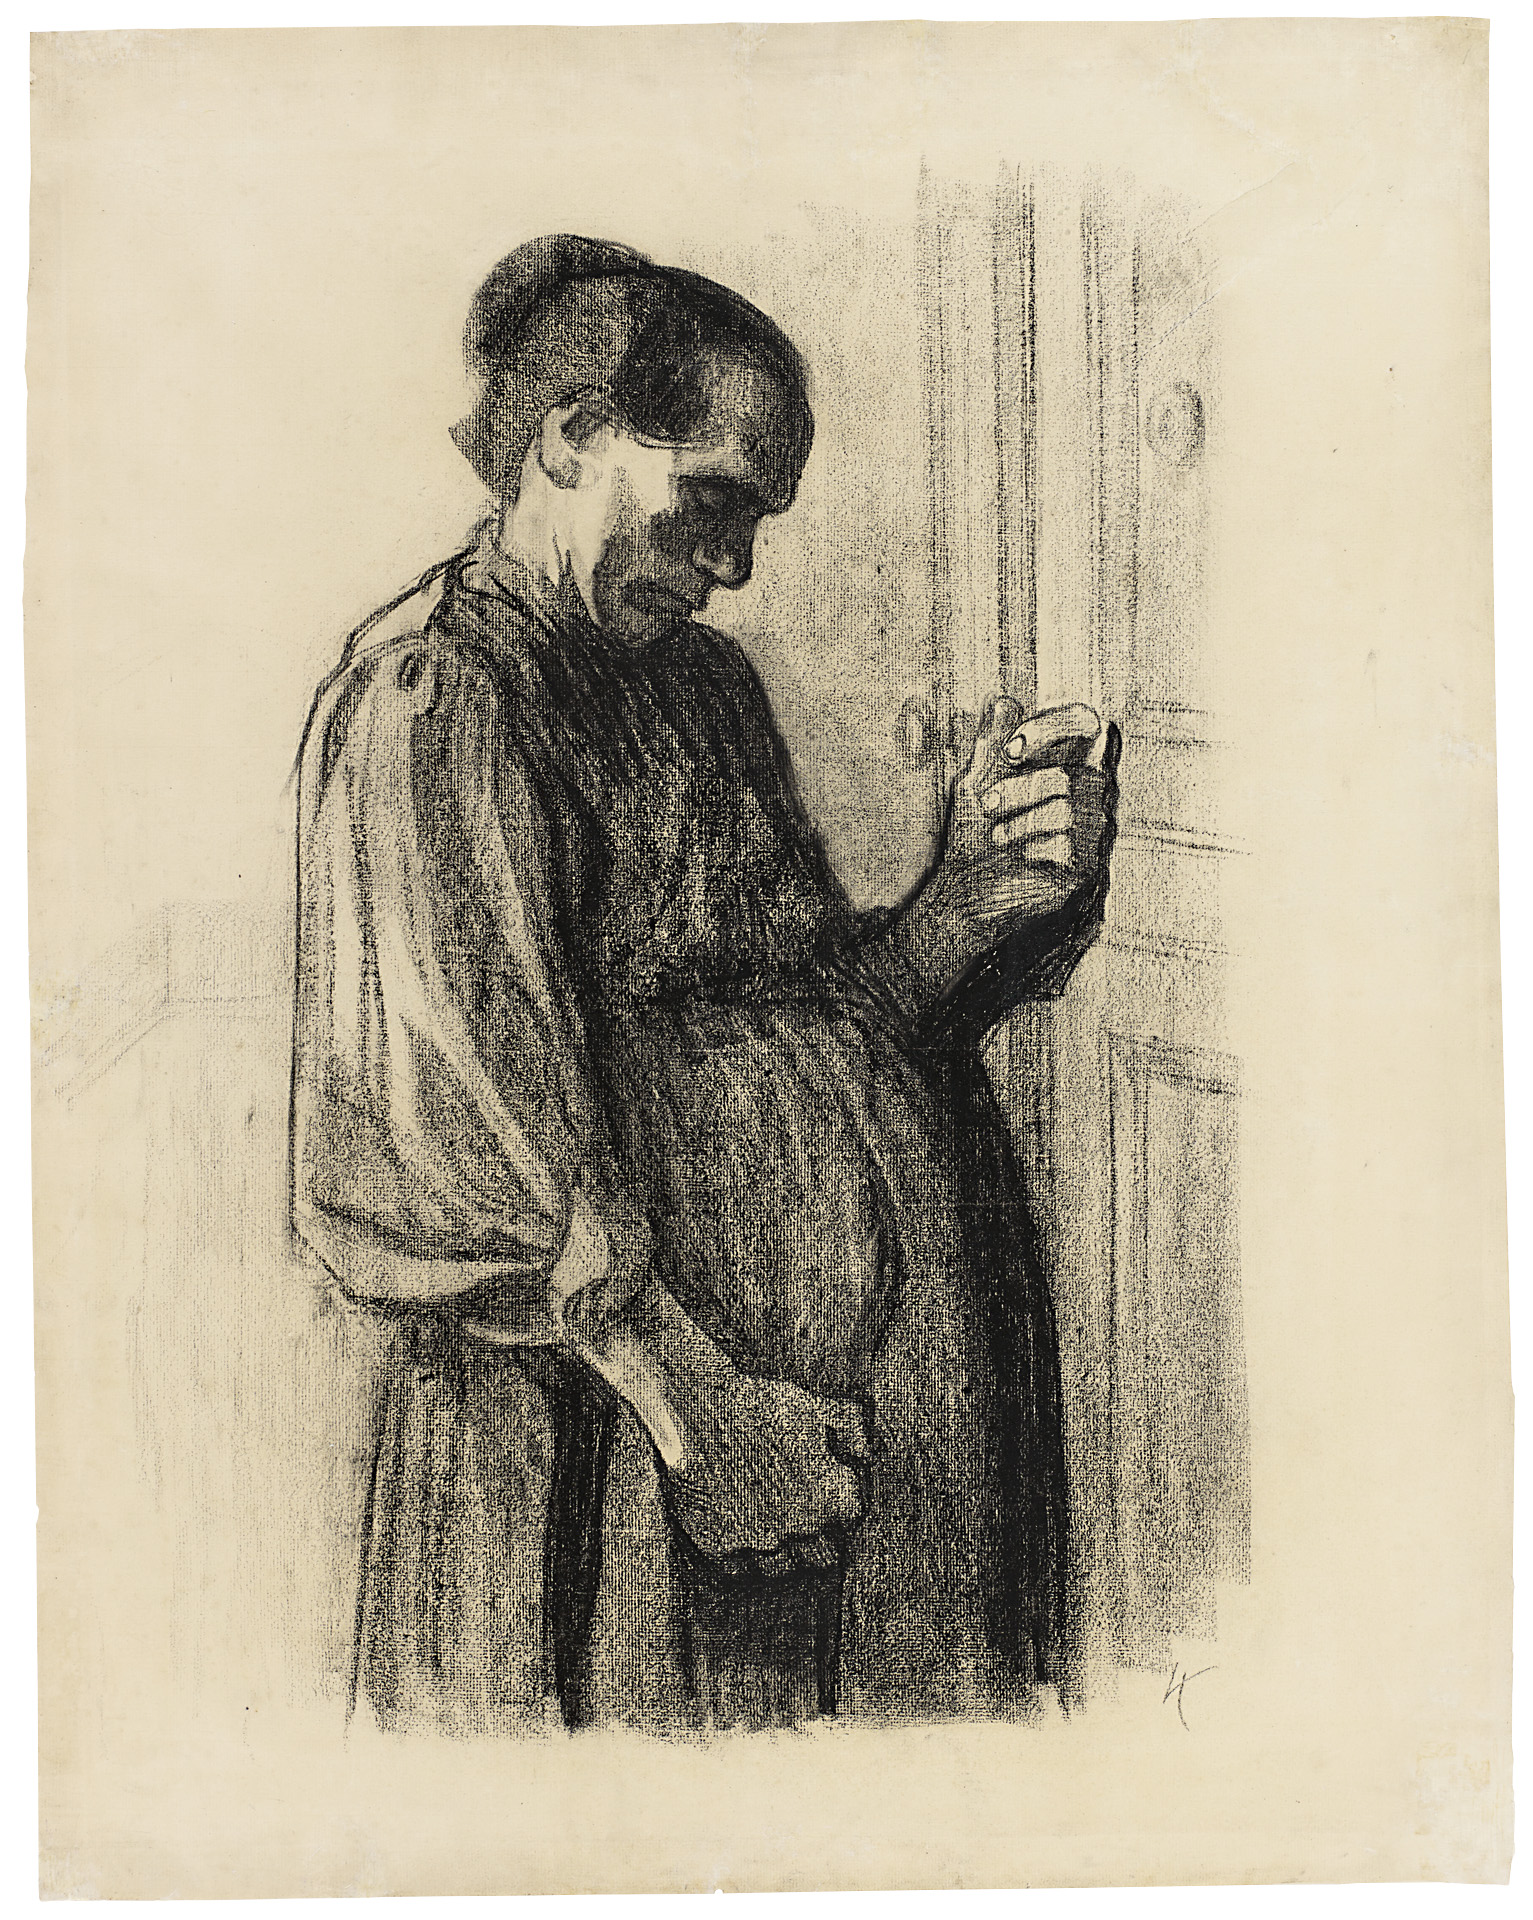 Käthe Kollwitz, At the Doctor's, sheet 3 of the series »Images of Misery«, 1908/1909, black crayon on Ingres paper, NT 475, Cologne Kollwitz Collection © Käthe Kollwitz Museum Köln